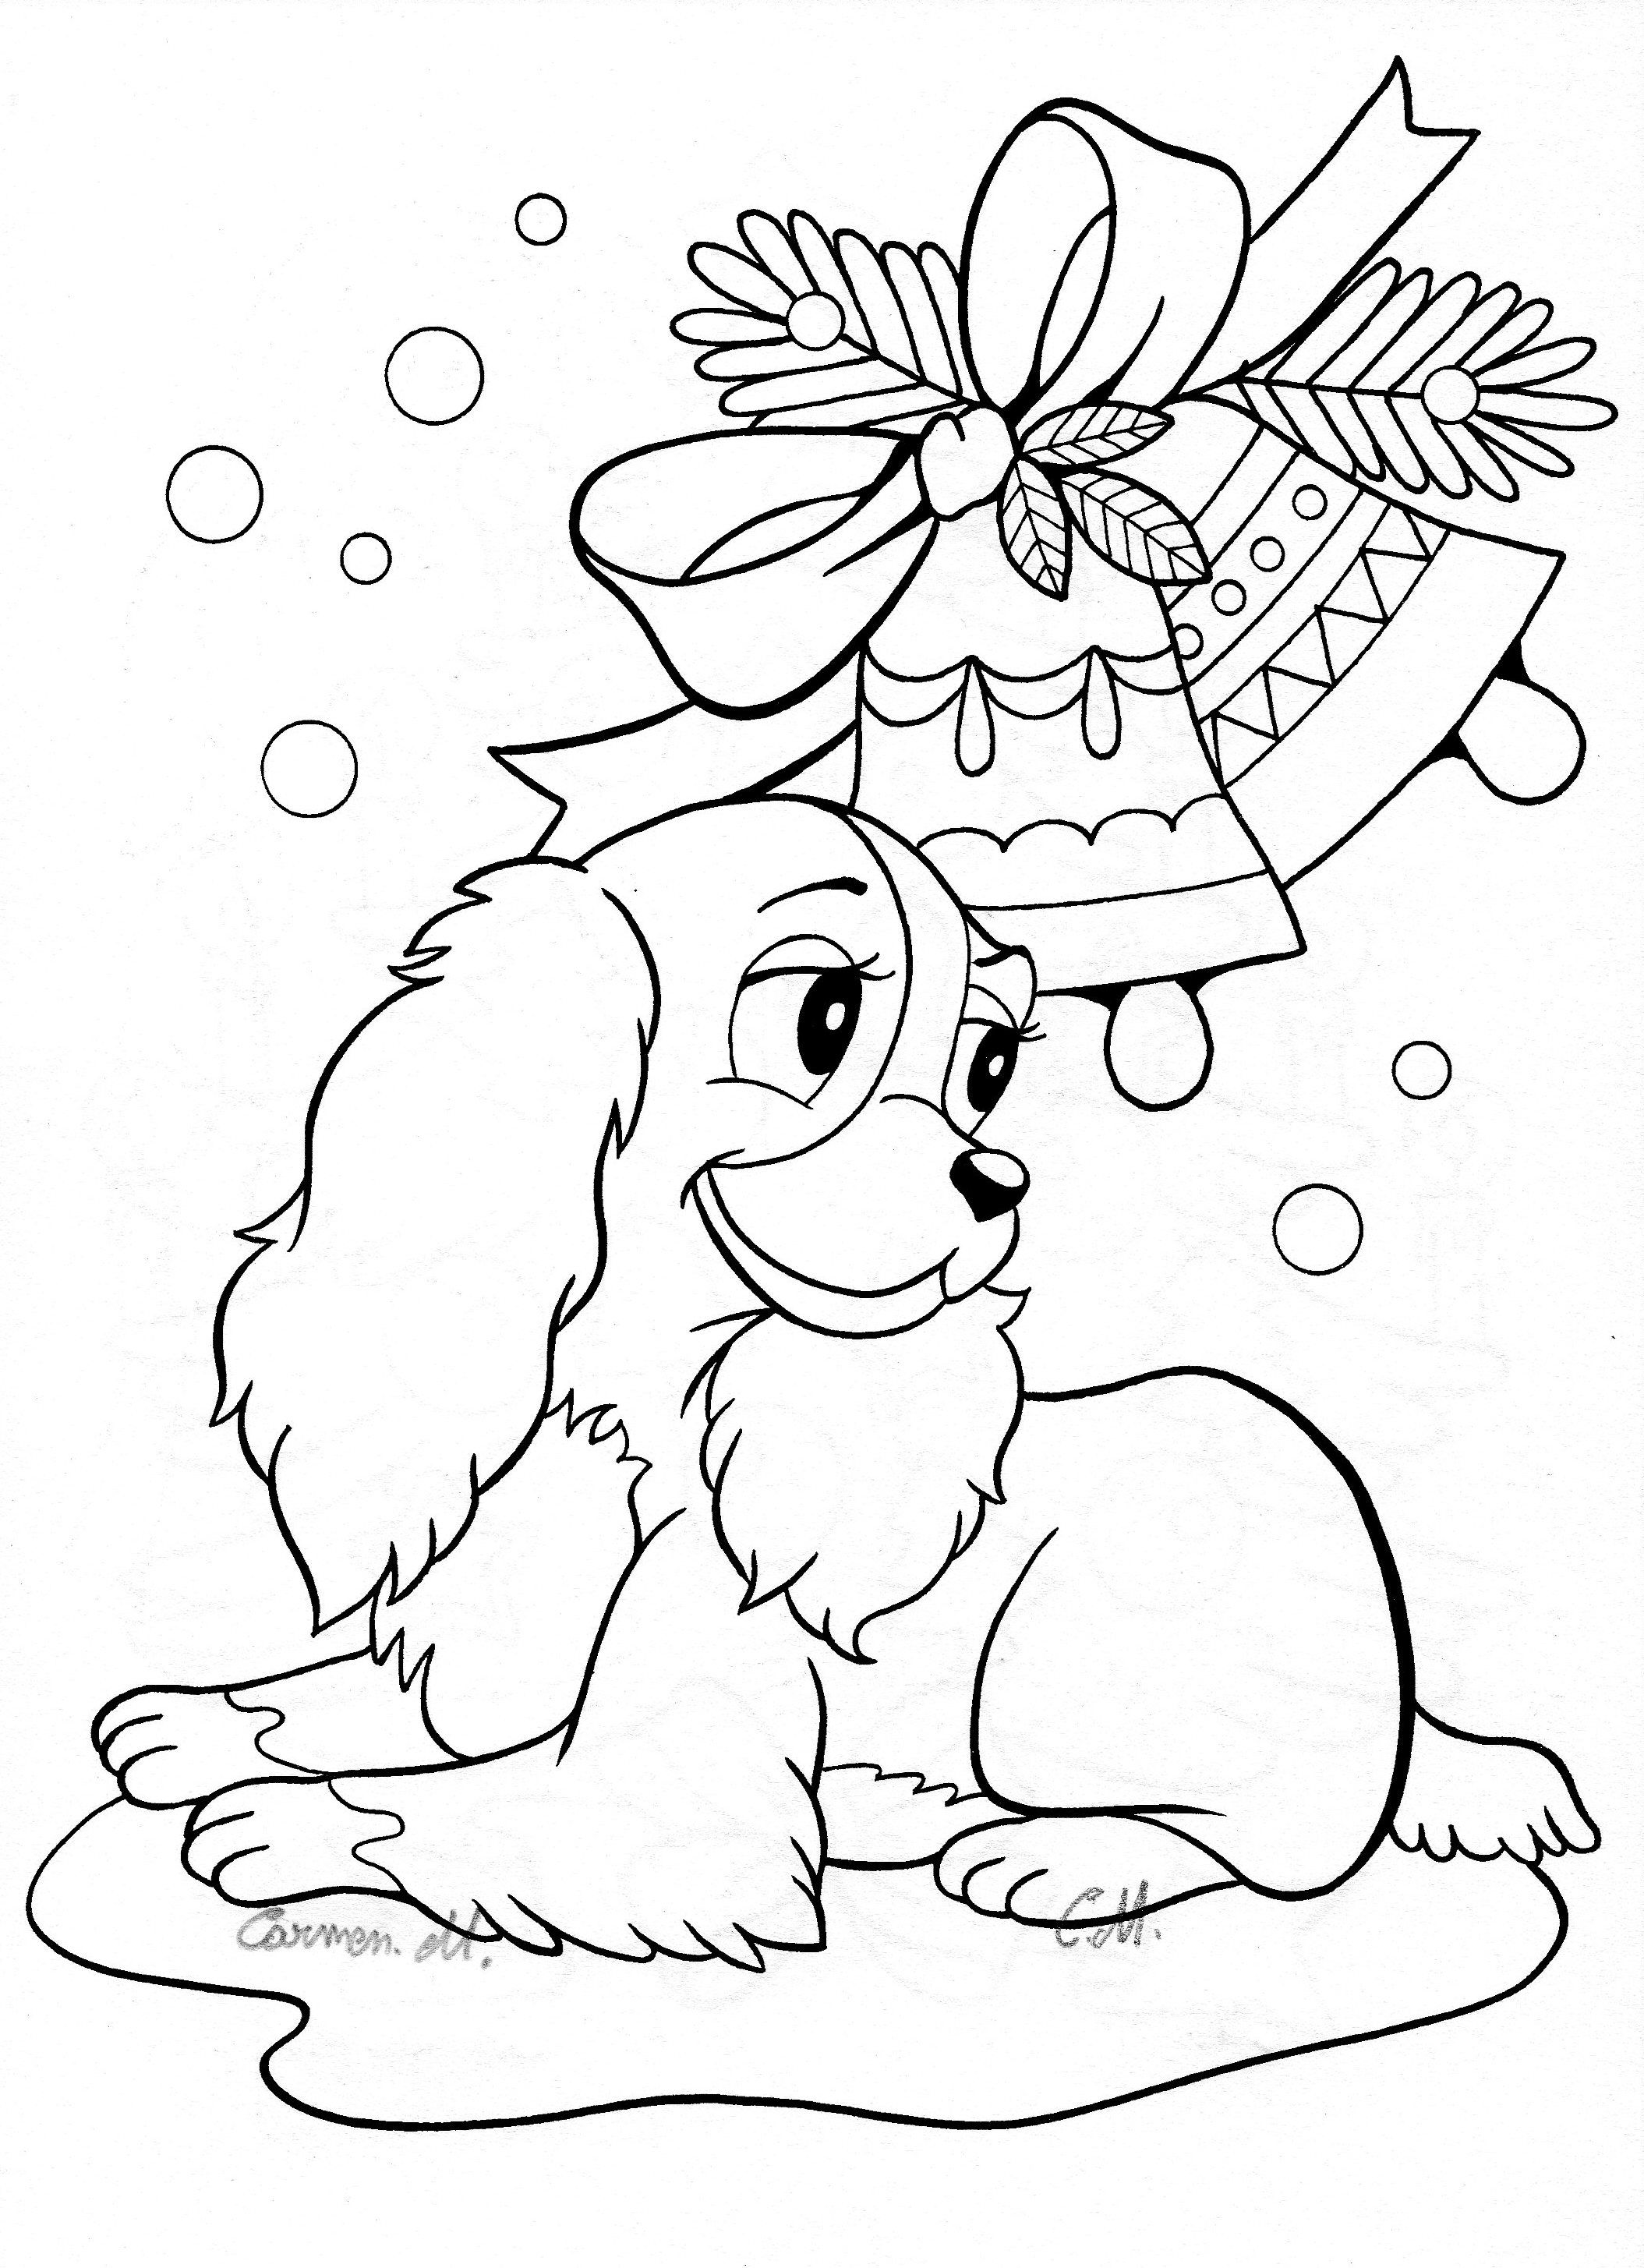 Kids crafts cute coloring pages adult coloring for Cute adult coloring pages